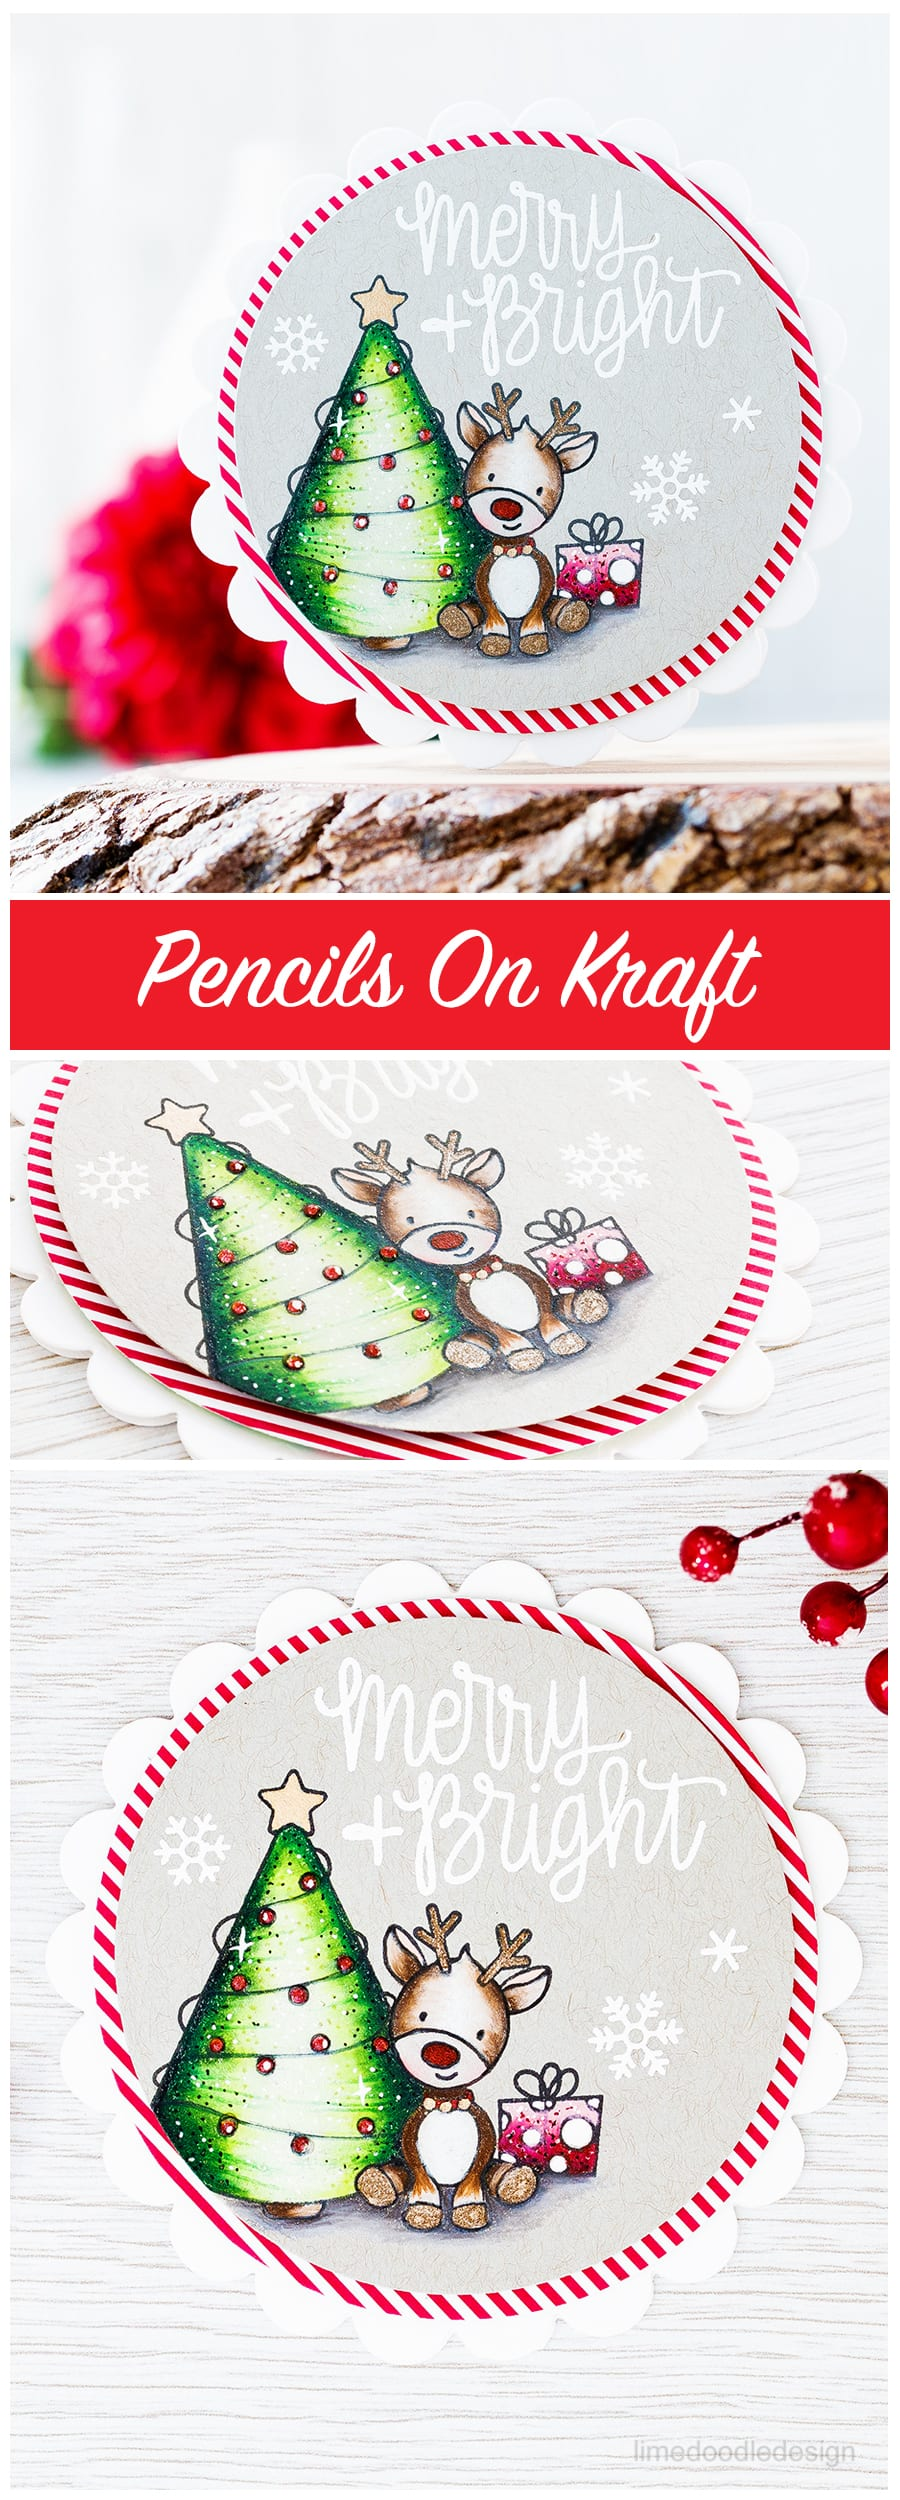 Coloring with pencils on kraft card and the new December card kit from Simon Says Stamp. Find out more about this cute Christmas card by clicking on the following link: https://limedoodledesign.com/2016/11/coloring-with-pencils-on-kraft-card/